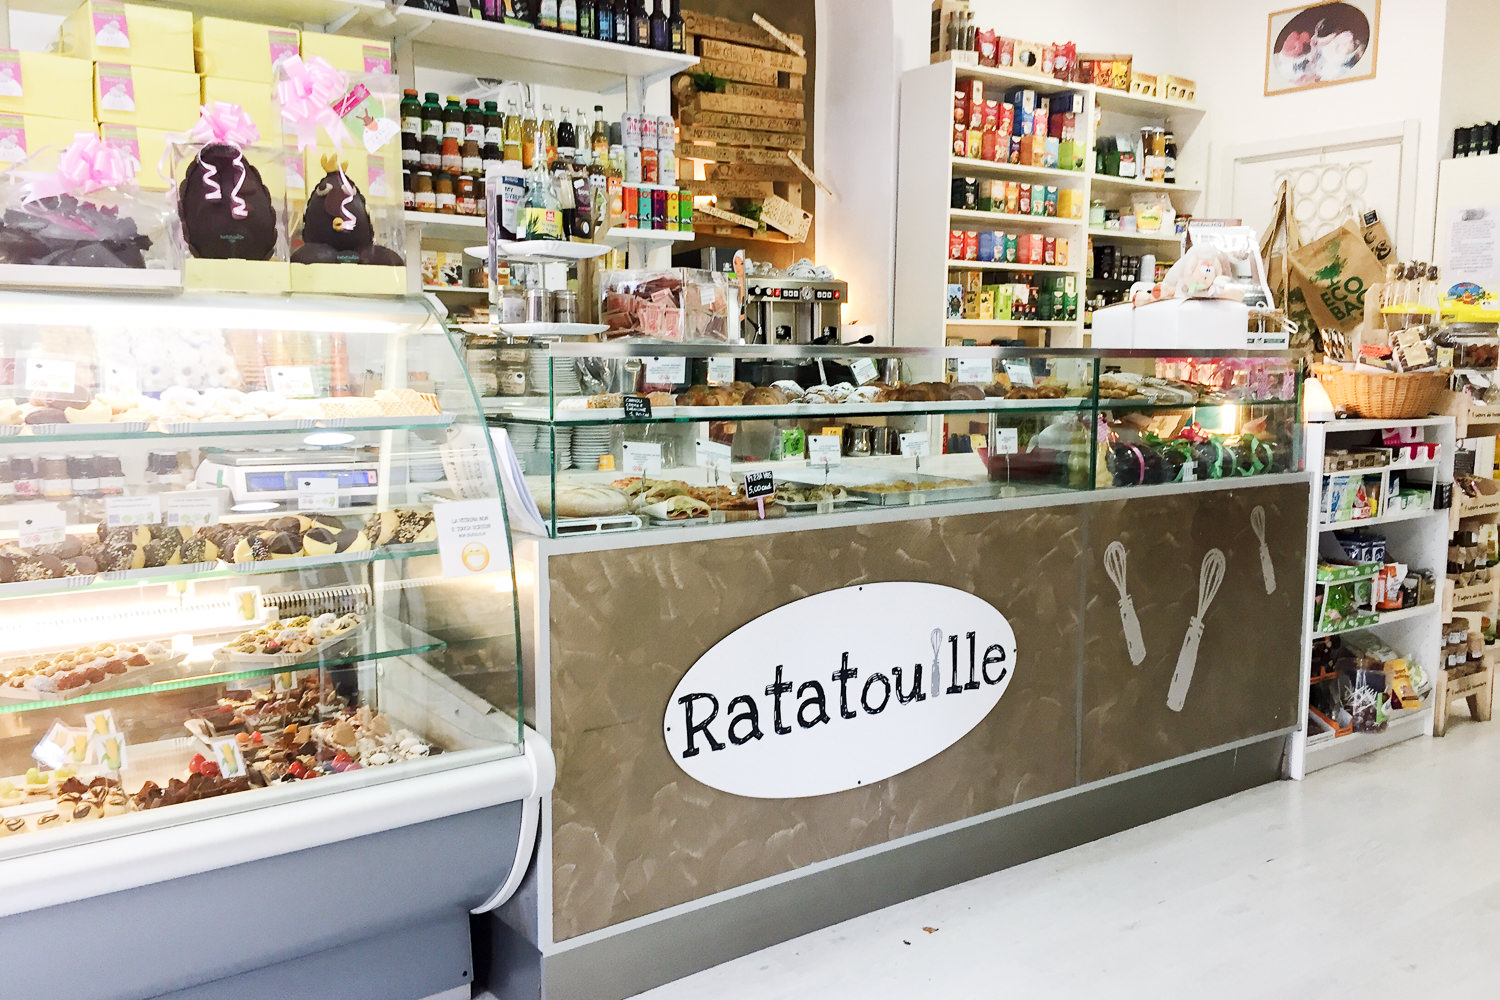 Turin: Ratatouille Vegan Bakery